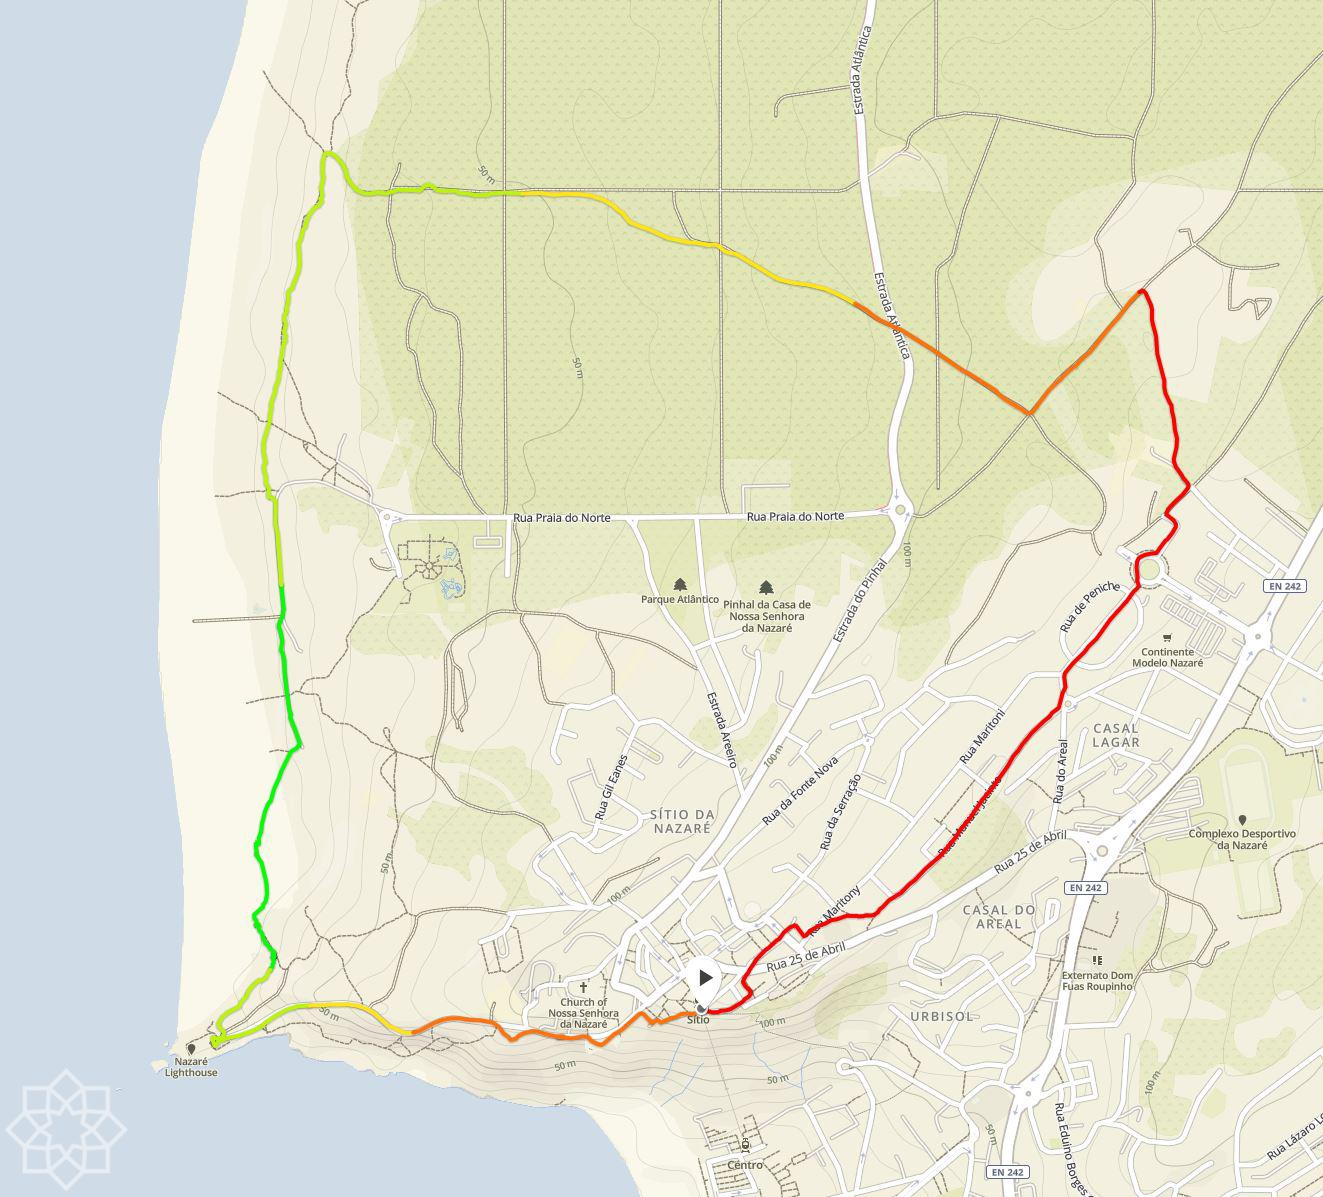 6,5 km Jogging and Hiking trail in Sítio da Nazaré Portugal. We go counter clockwise.